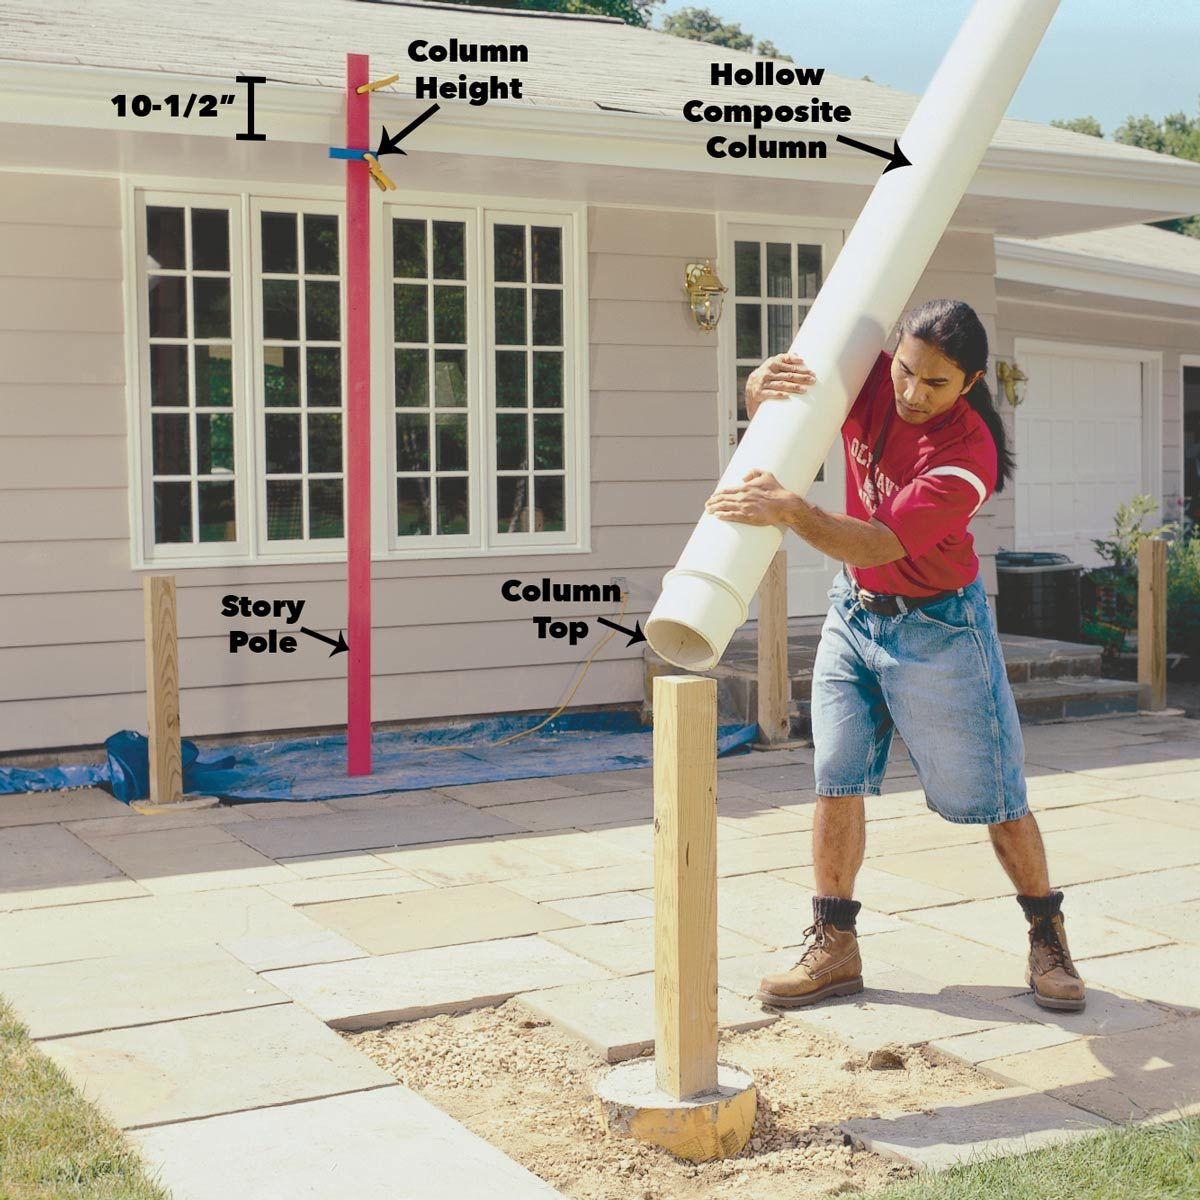 Bon Cut The Pergola Columns To Length And Fasten Them To The Posts